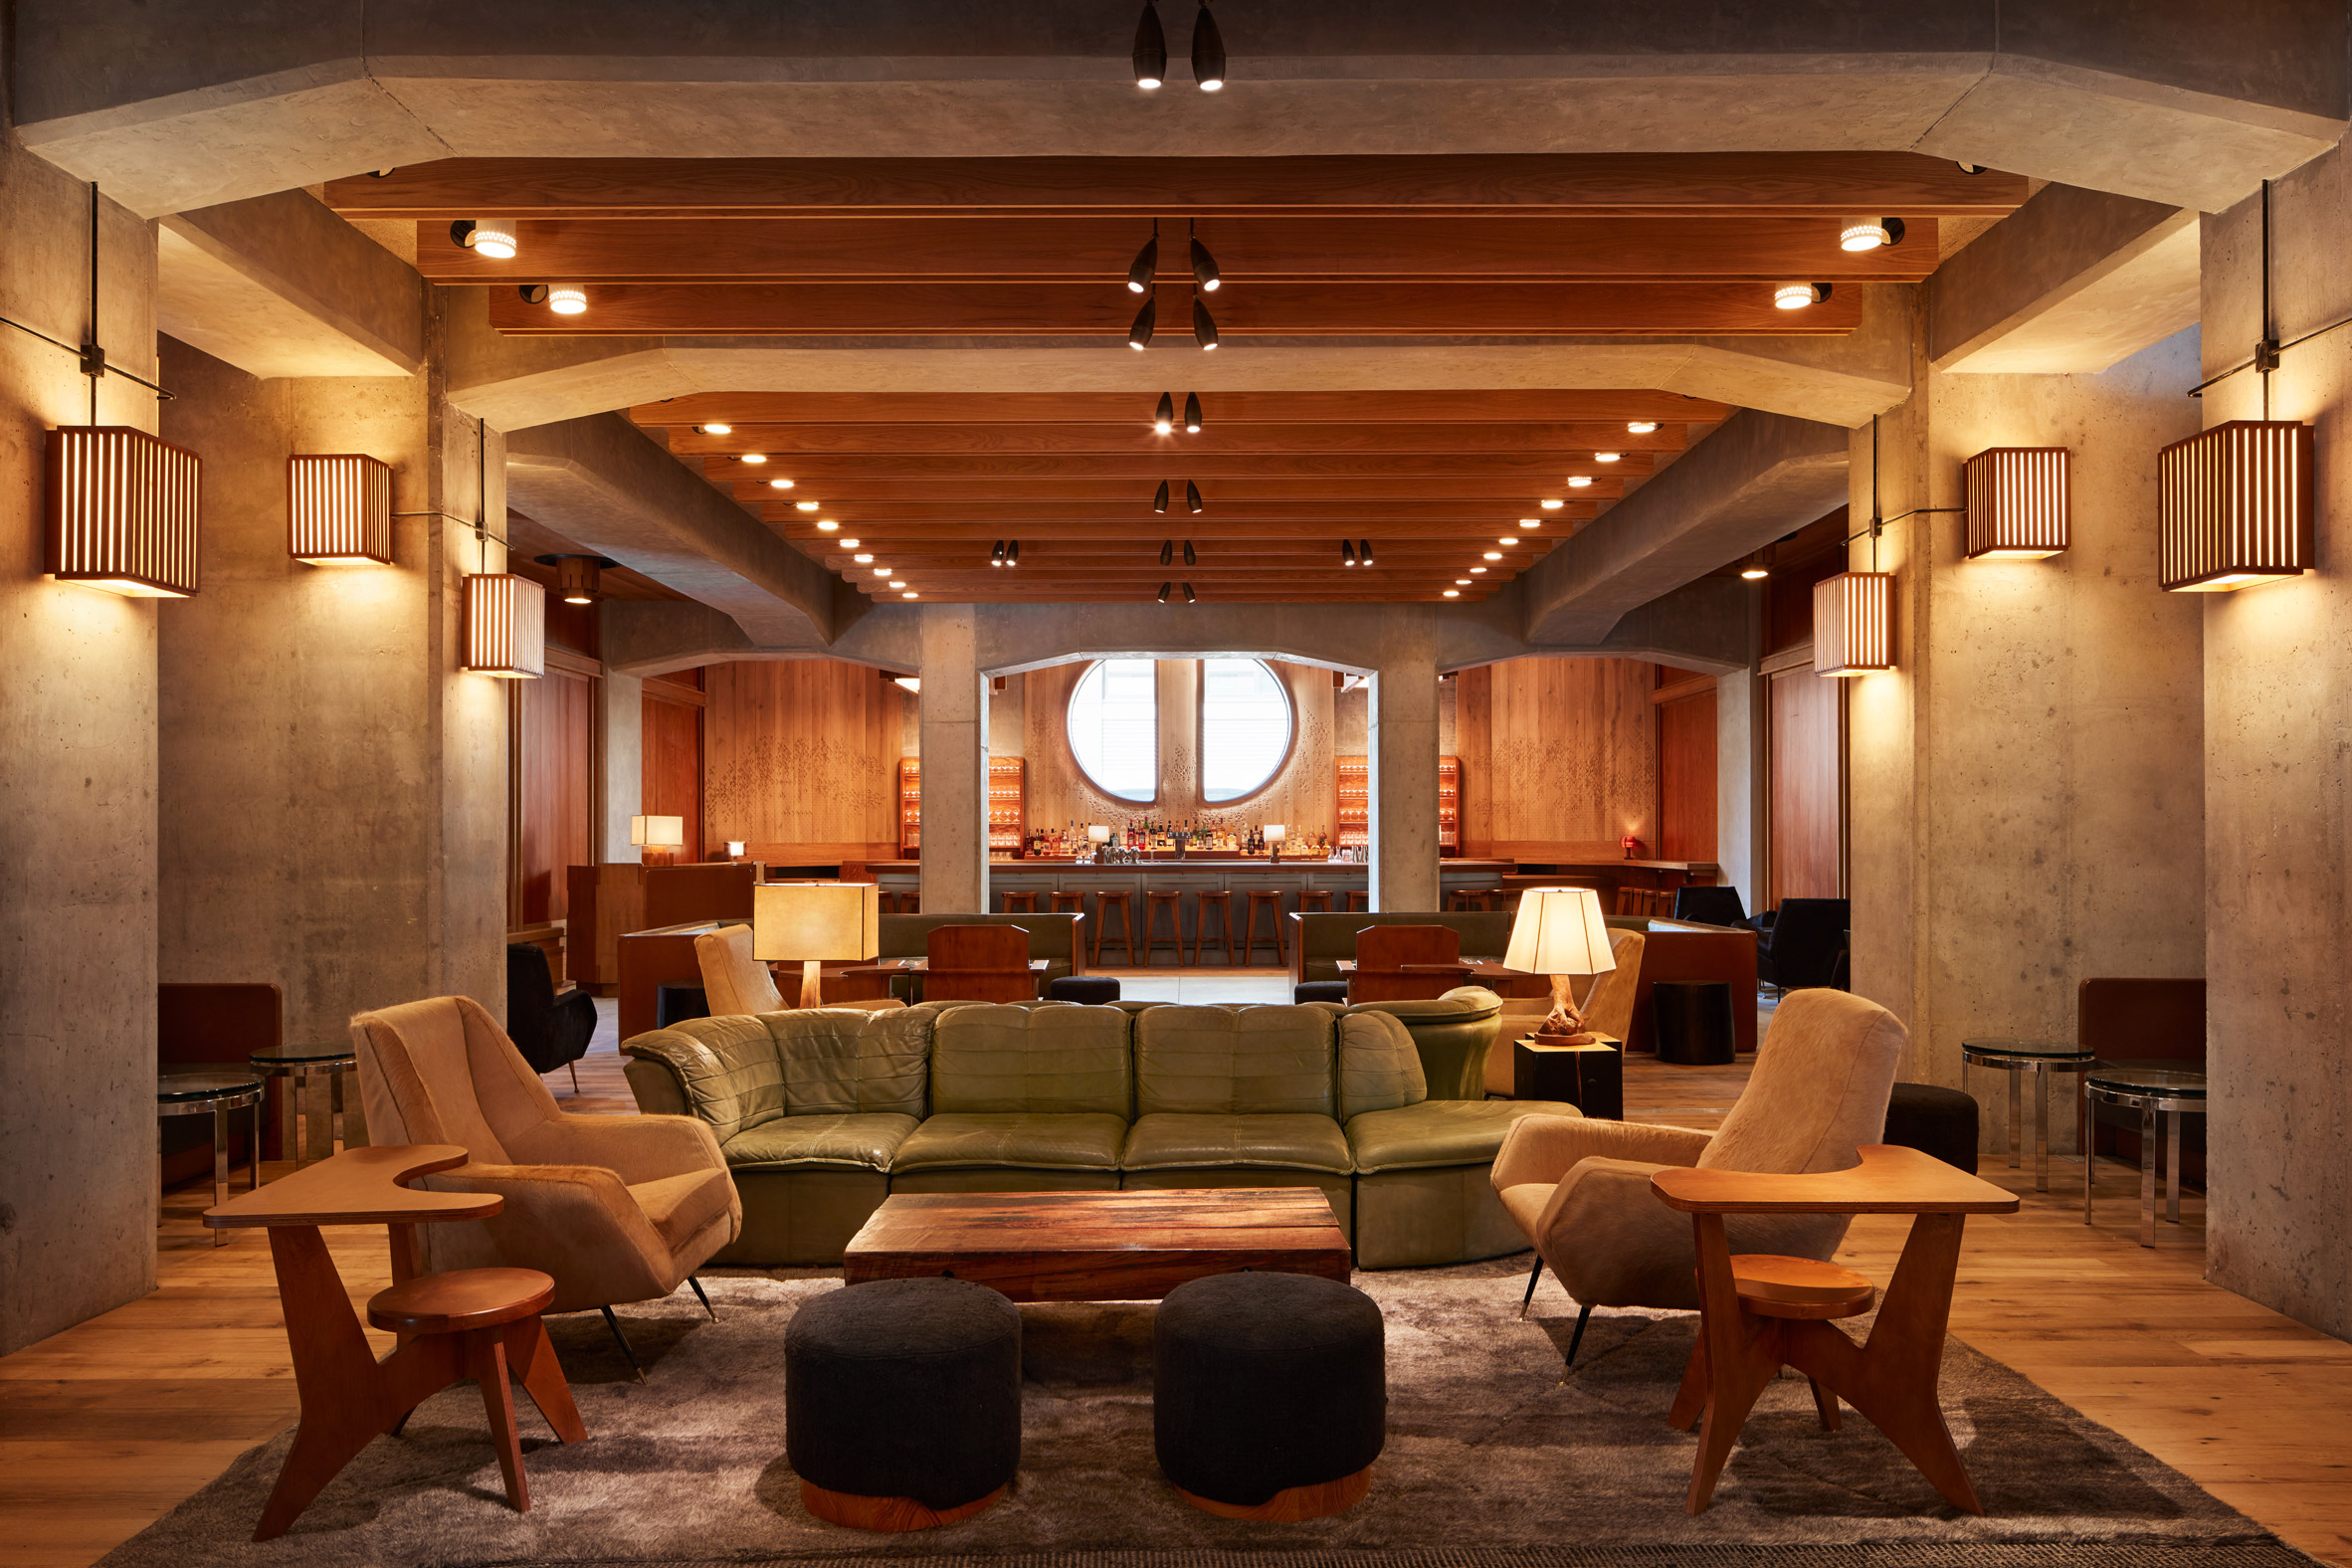 Lounge with wooden ceiling